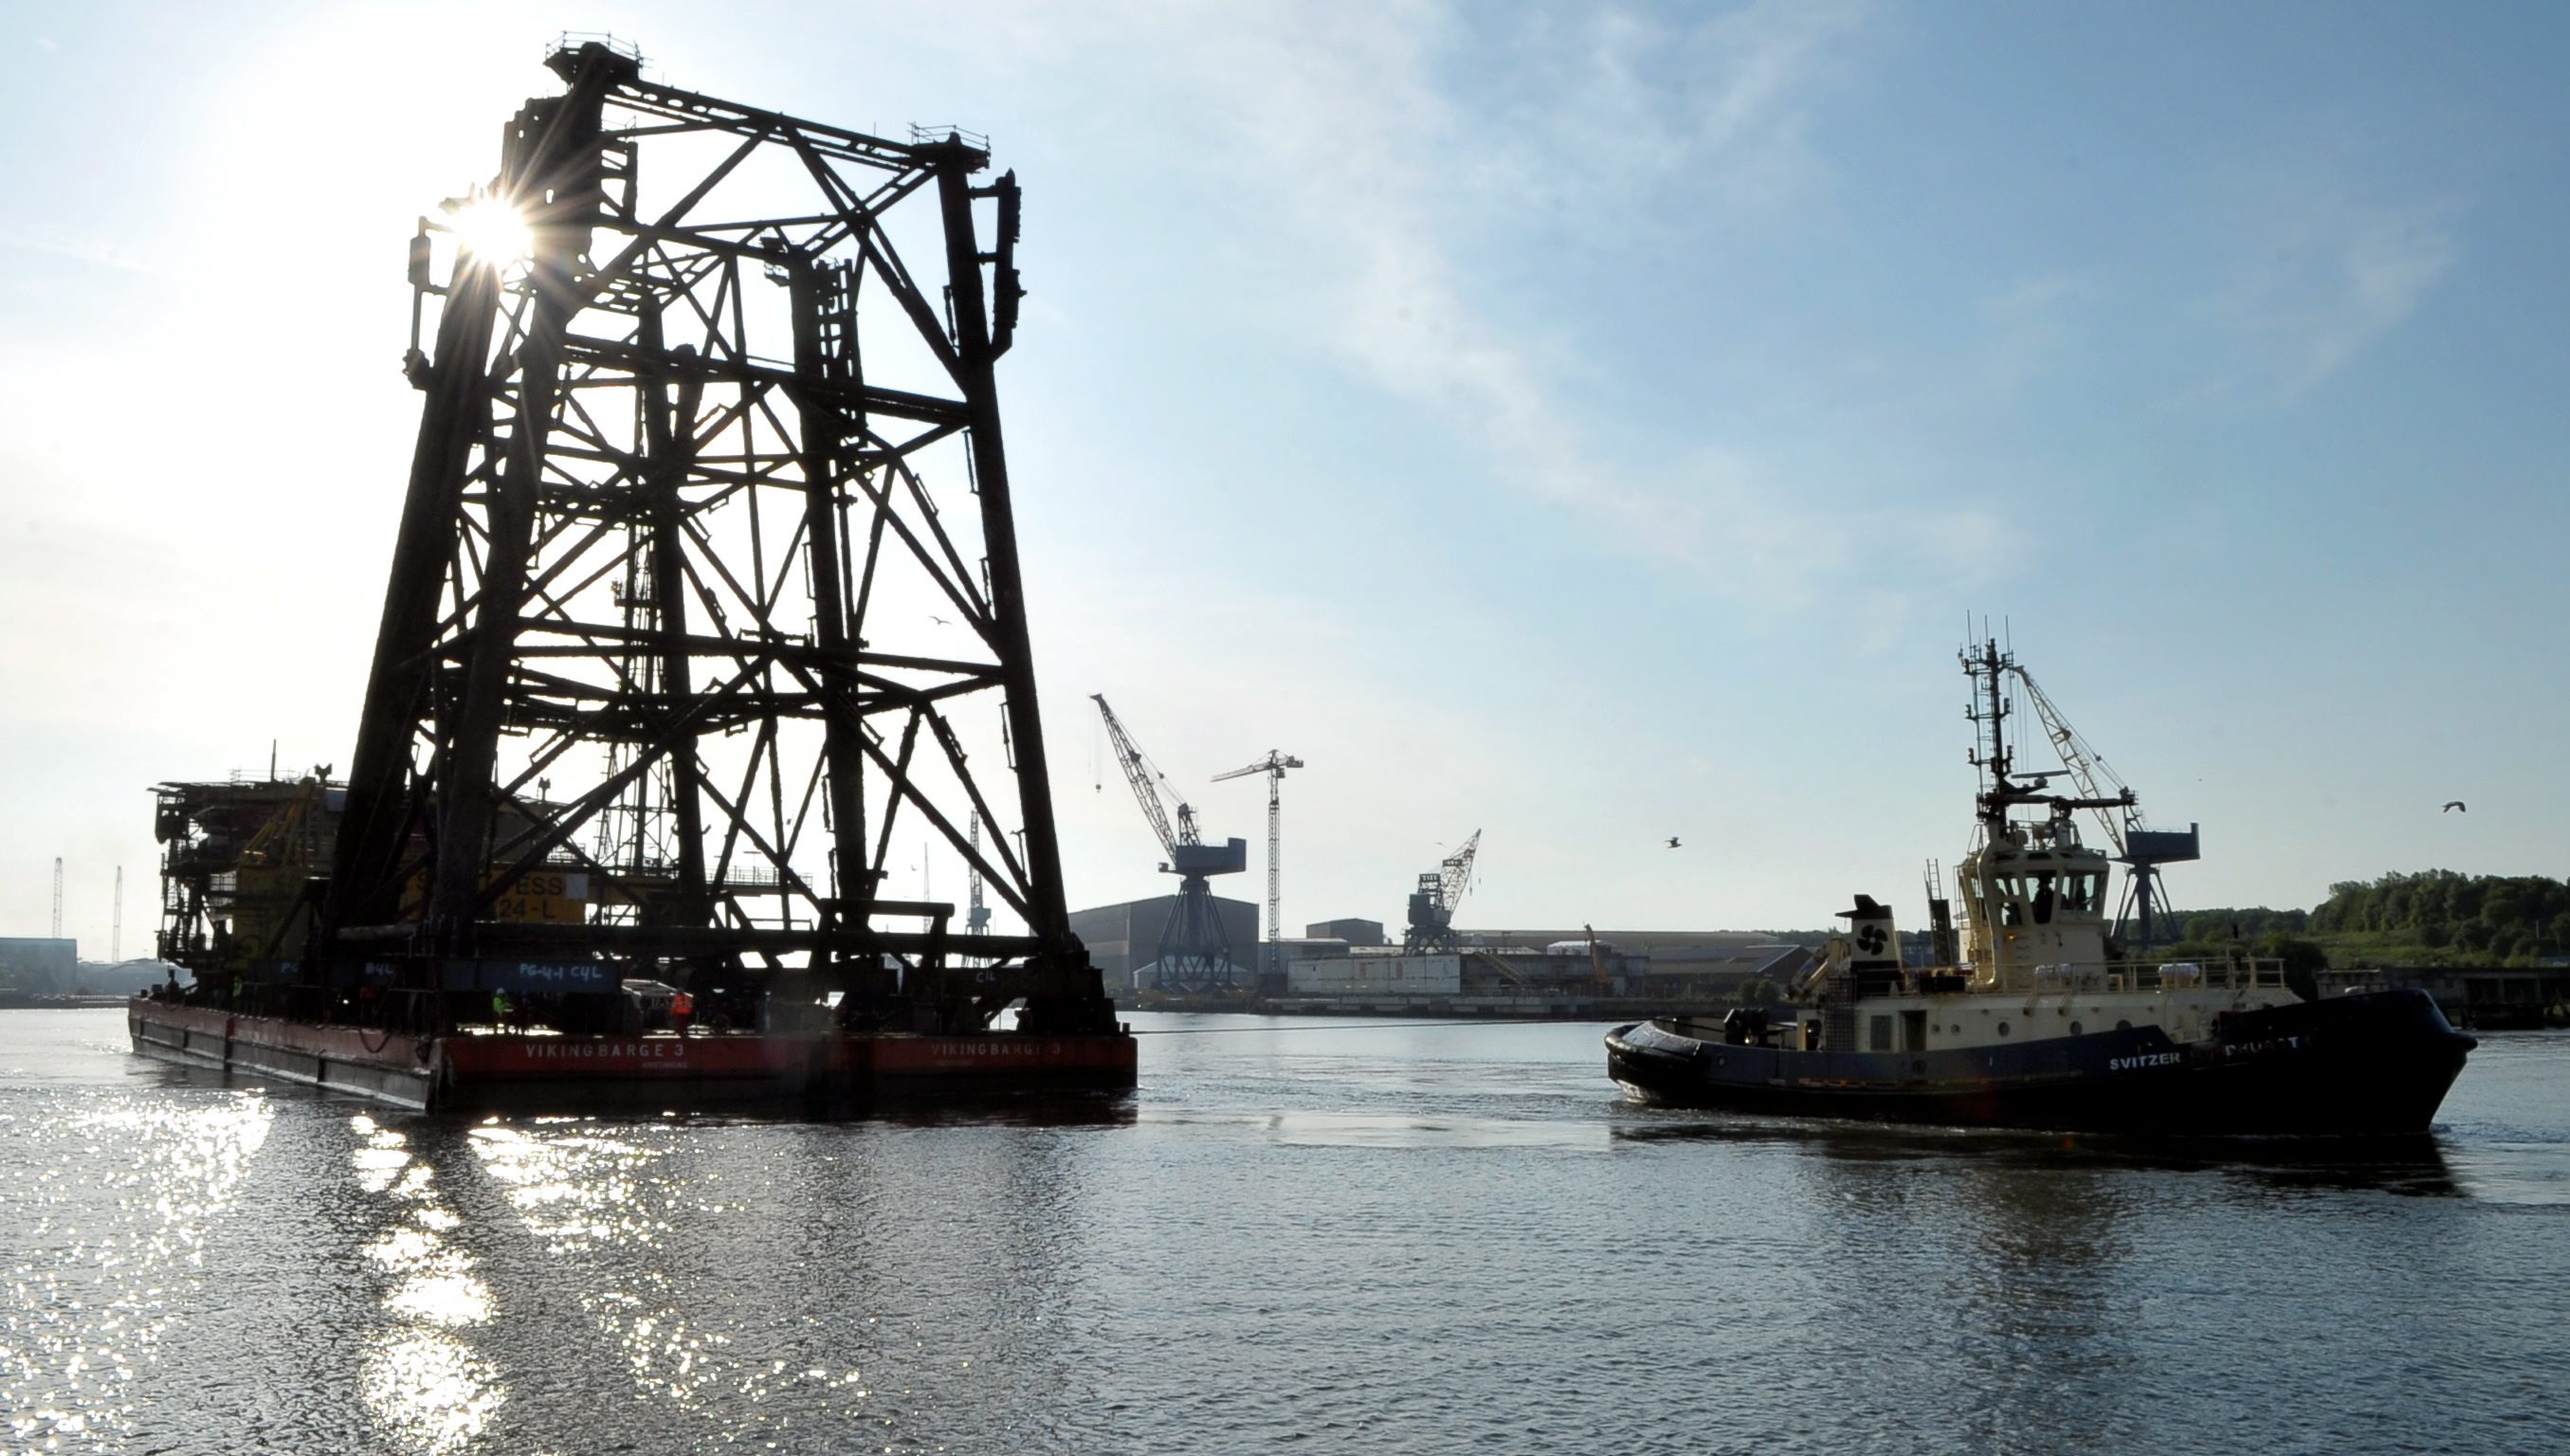 Infrastructure from the Indefatigable field in the southern North Sea arrives in port for decommissioning.